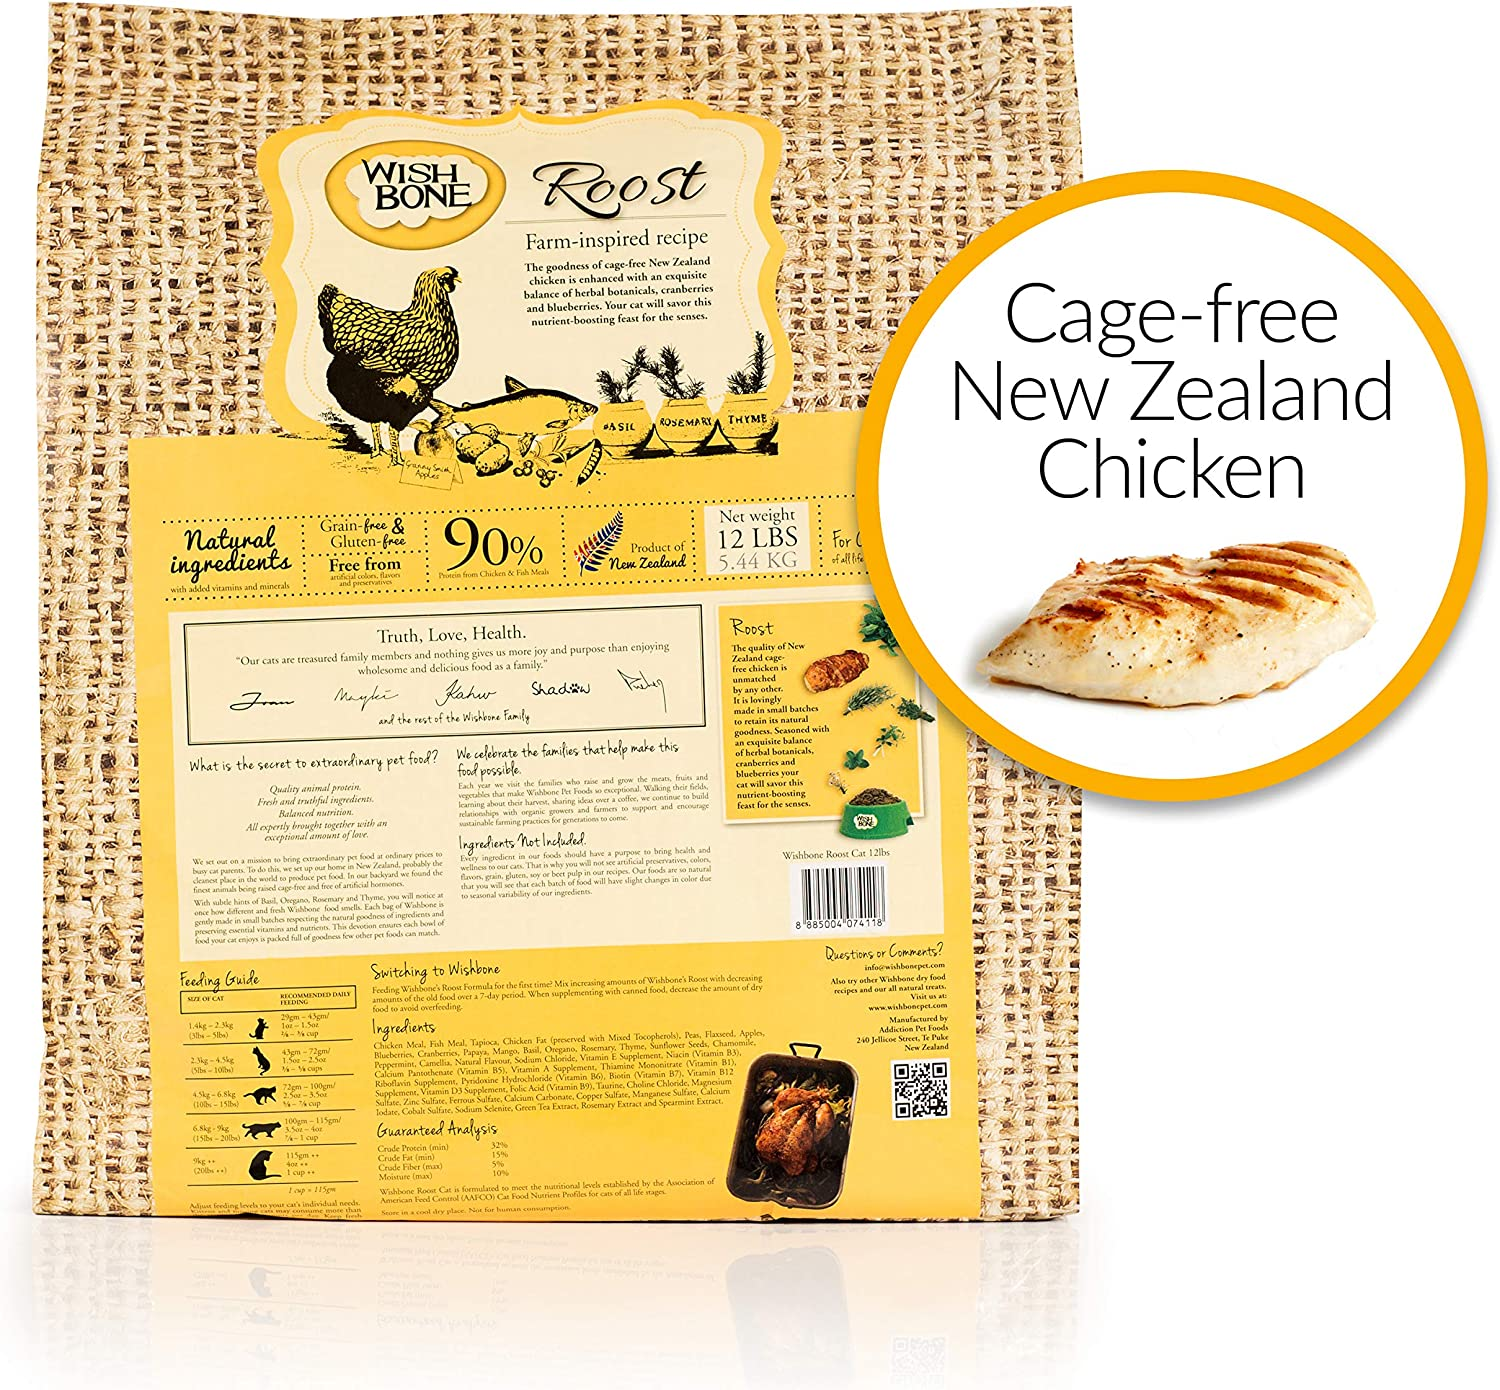 Wishbone Pet Foods Roost Grain and Gluten Free Cat Food, Made from New Zealand Chicken Cat Food, All Natural Dry Cat Food, High Protein, Minerals and Taurine Dry Cat Food, 12 lbs